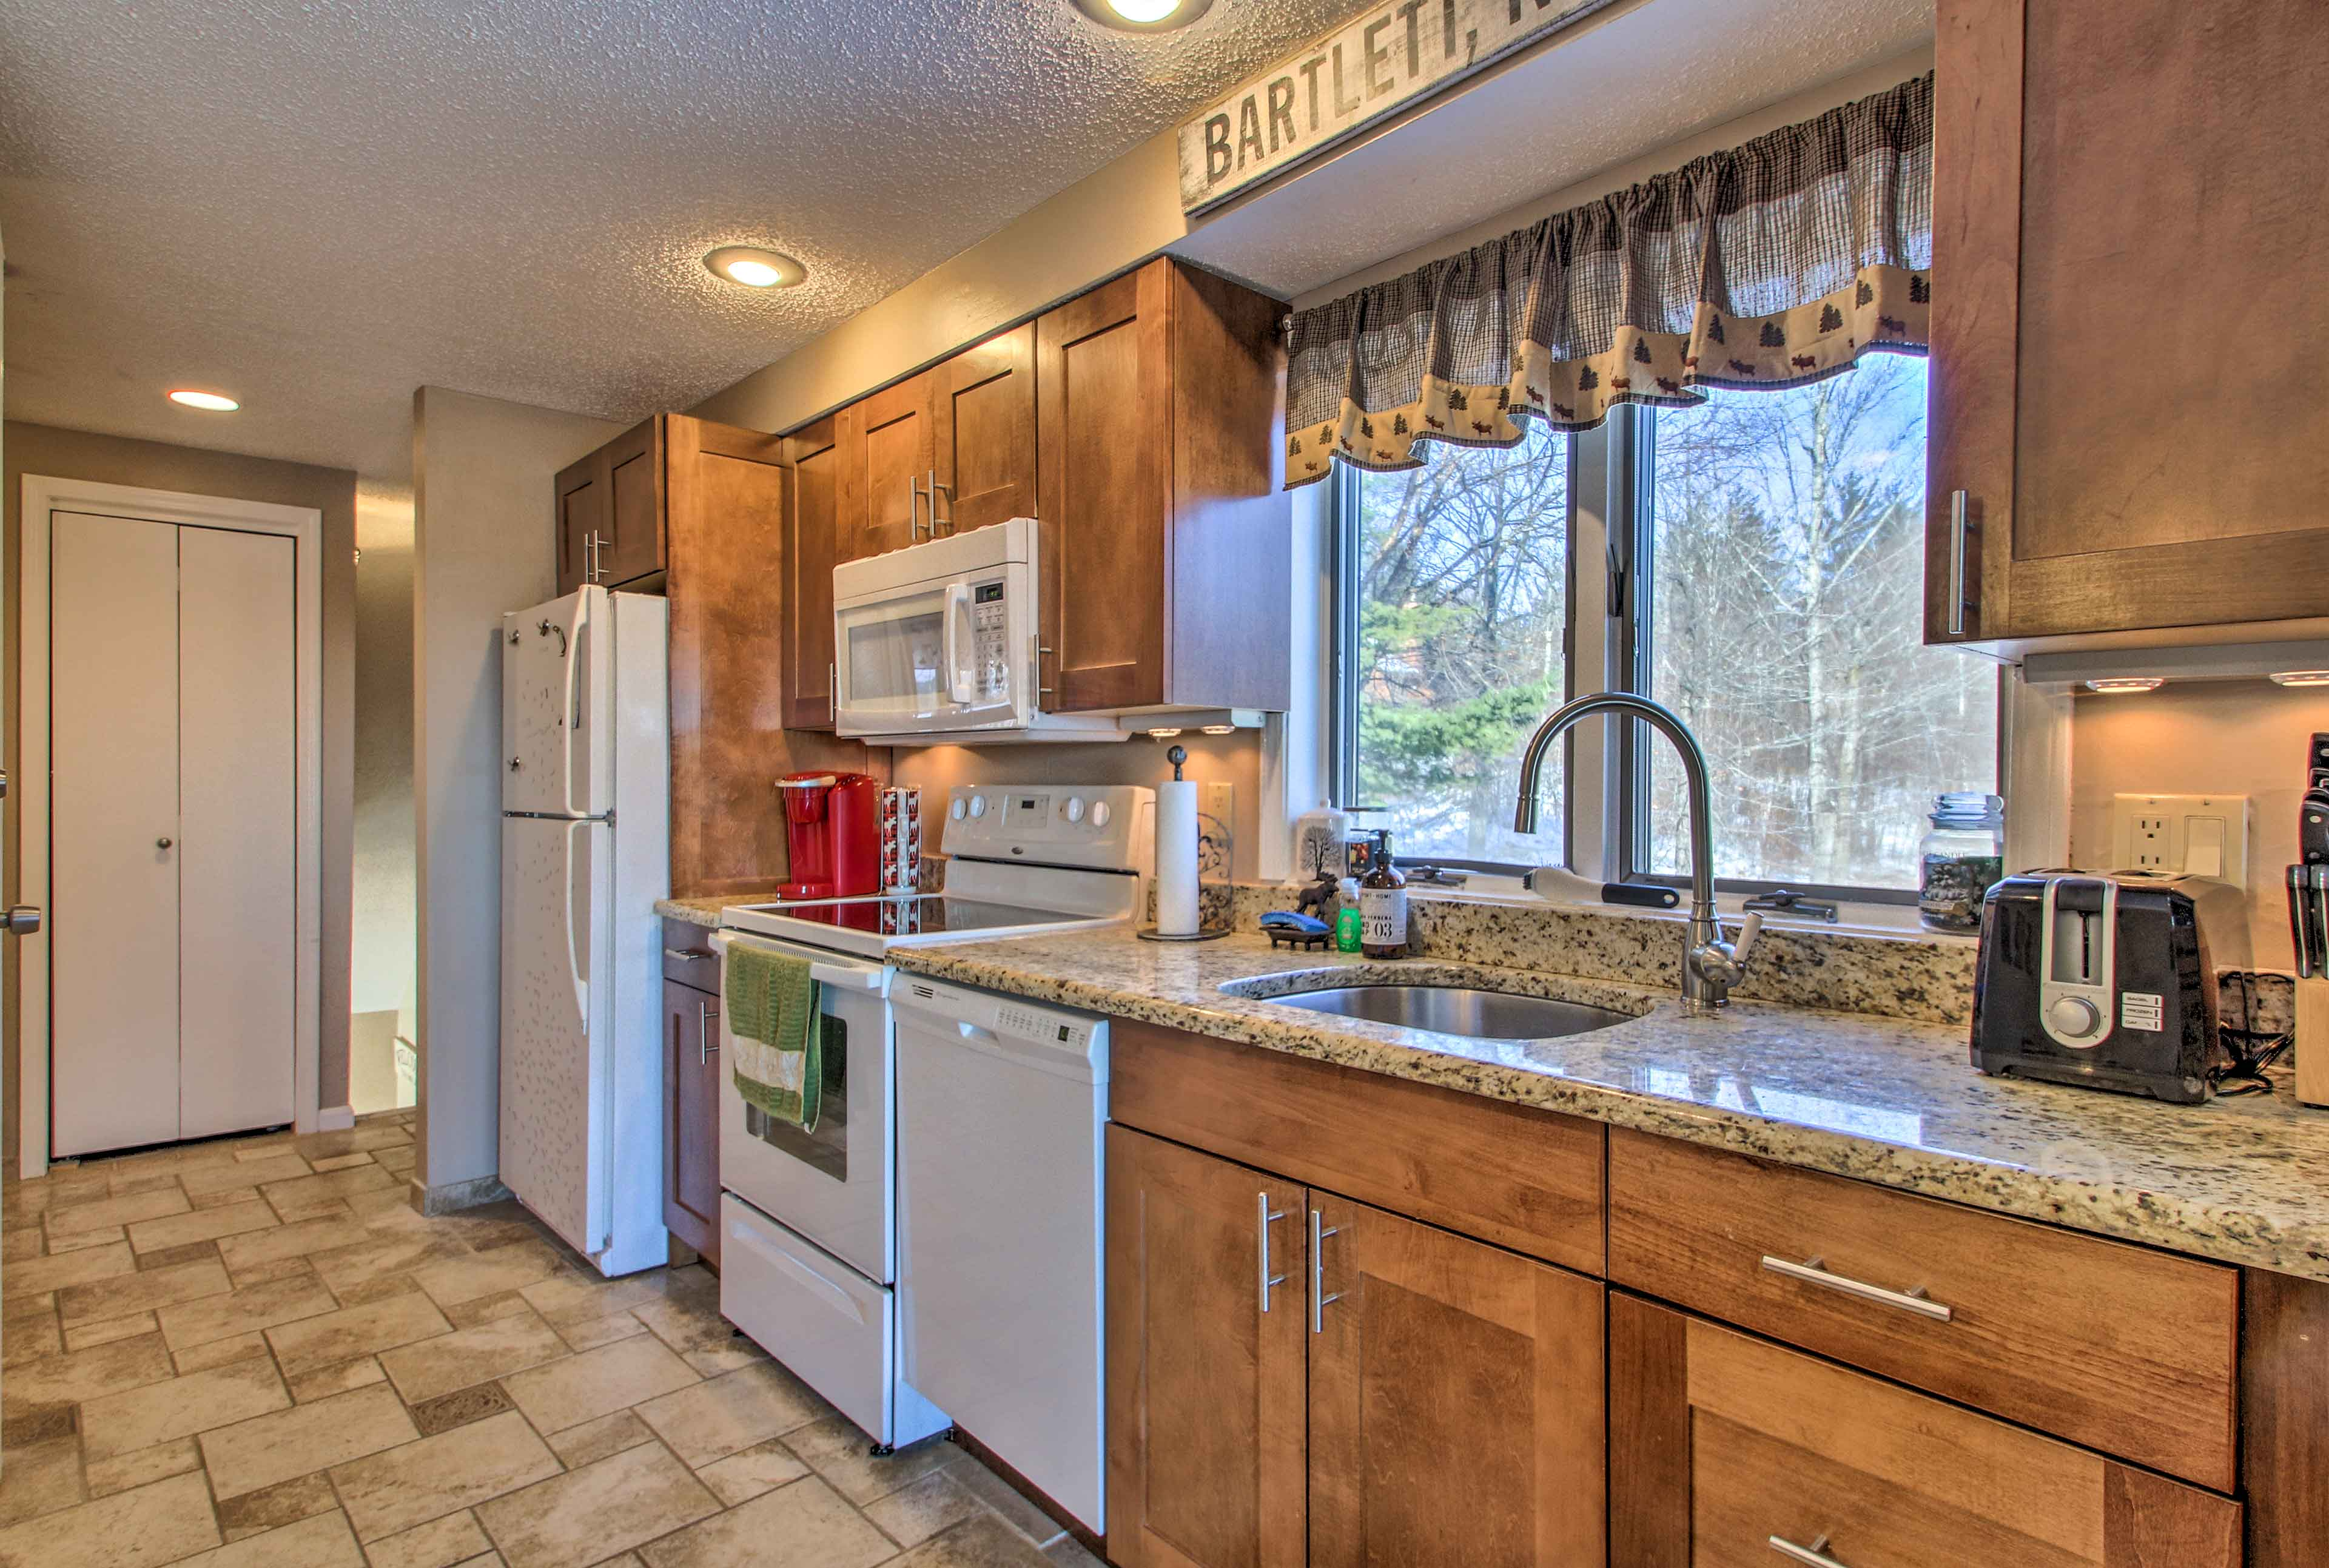 The kitchen boasts everything from a Keurig to a toaster!